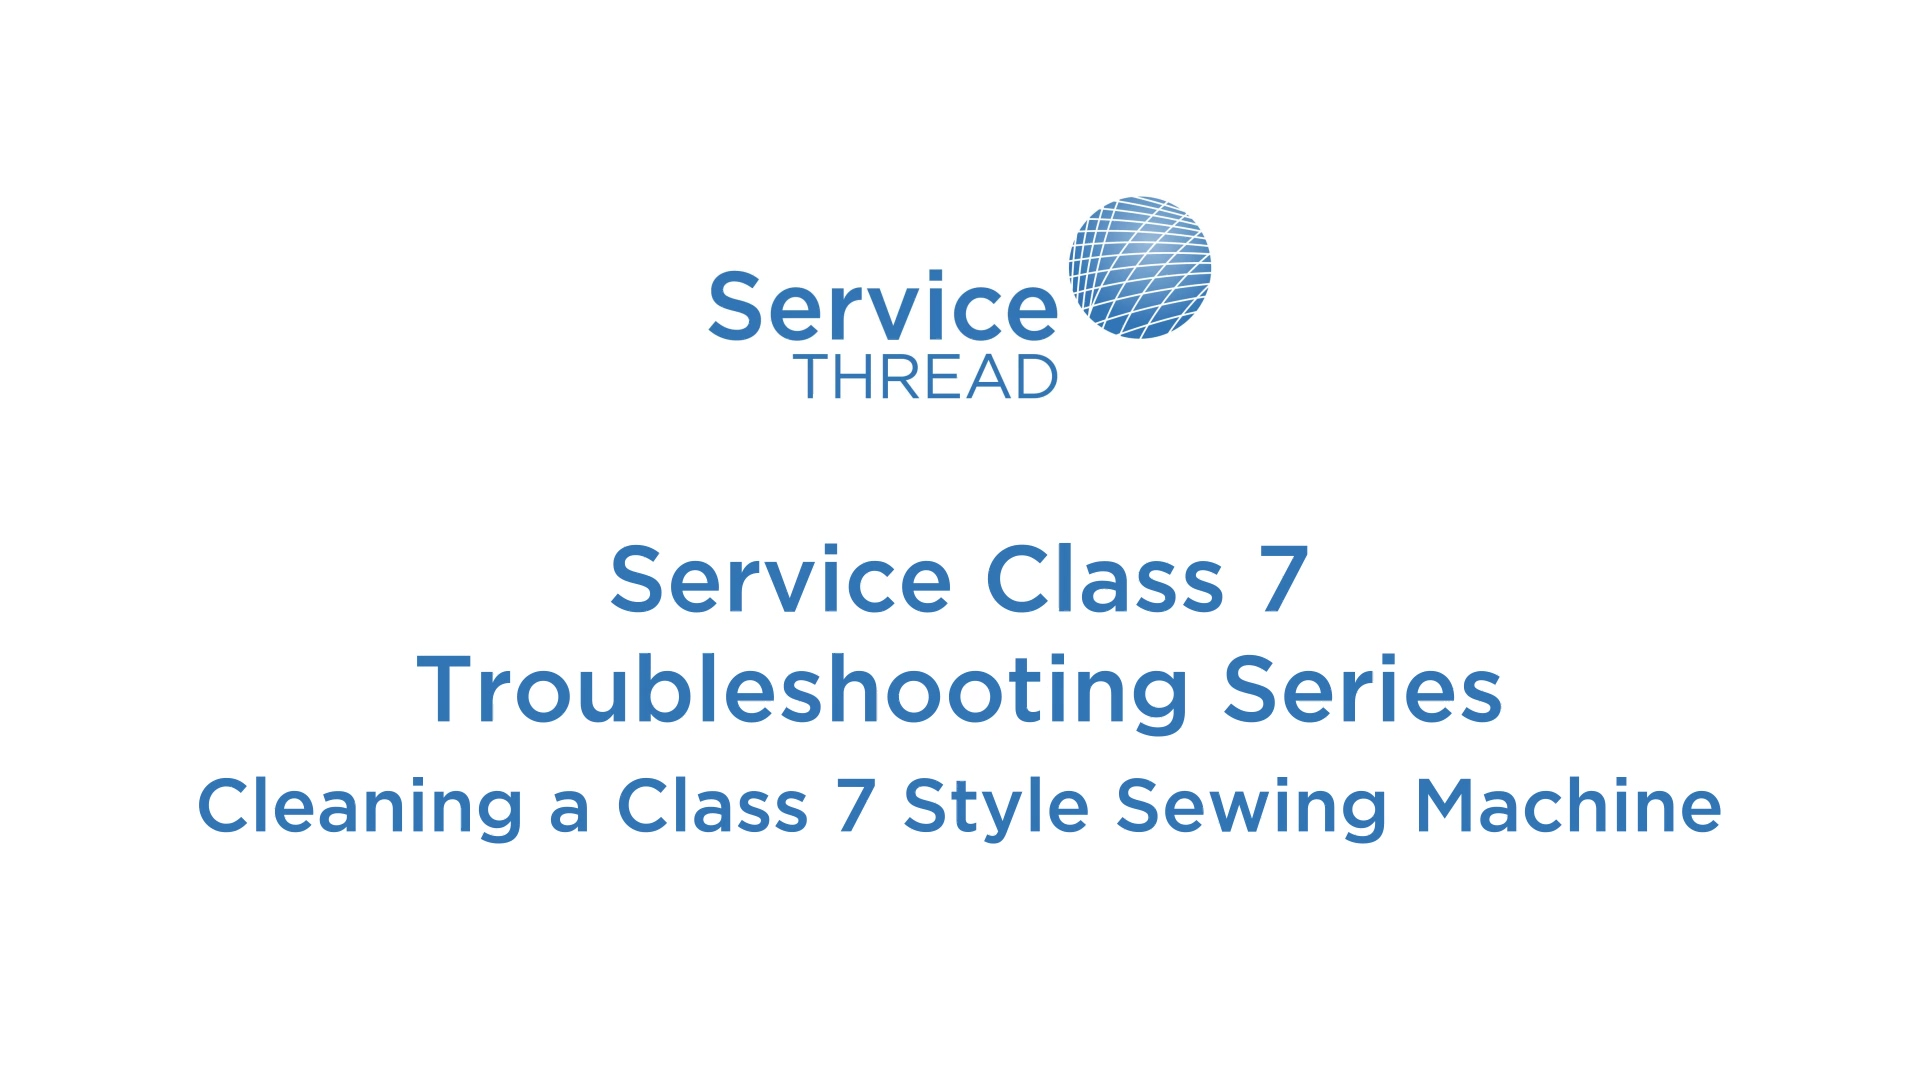 SERVICE THREAD Cleaning a class 7 machine 040921 v02